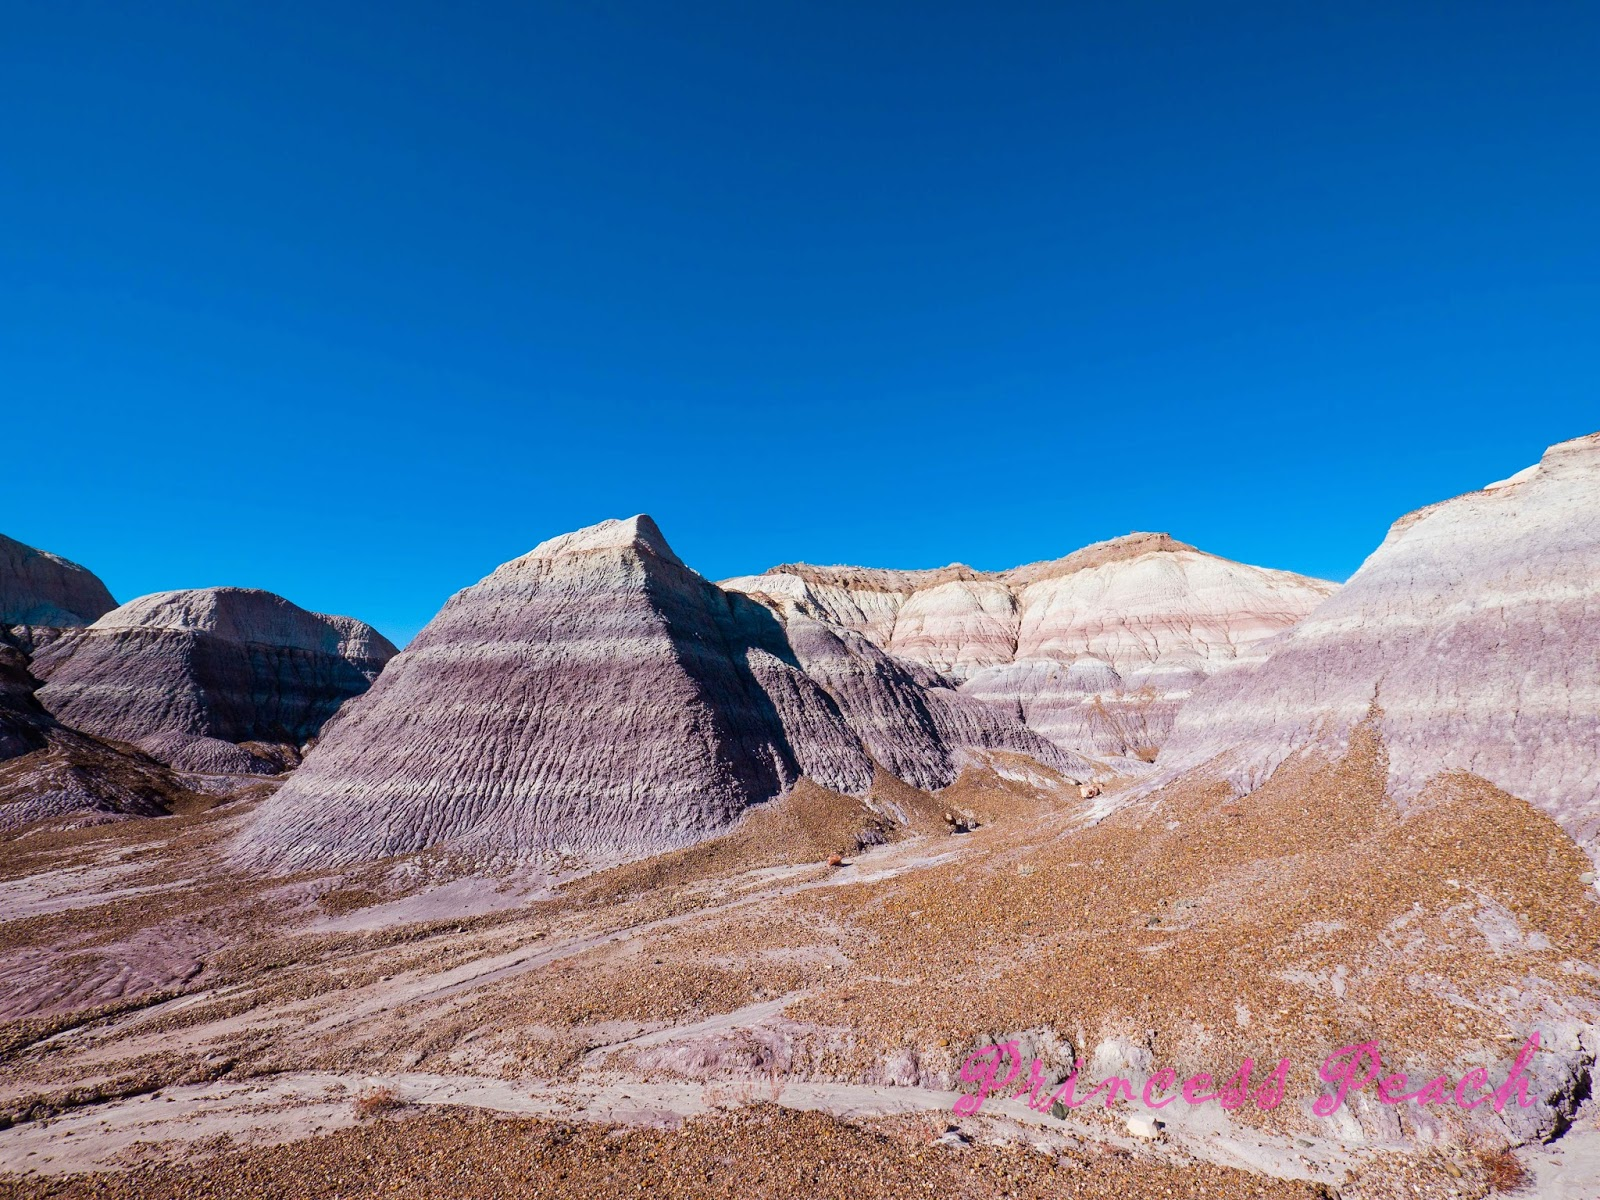 Petrified-Forest-National-Park-石化森林國家公園-Badlands